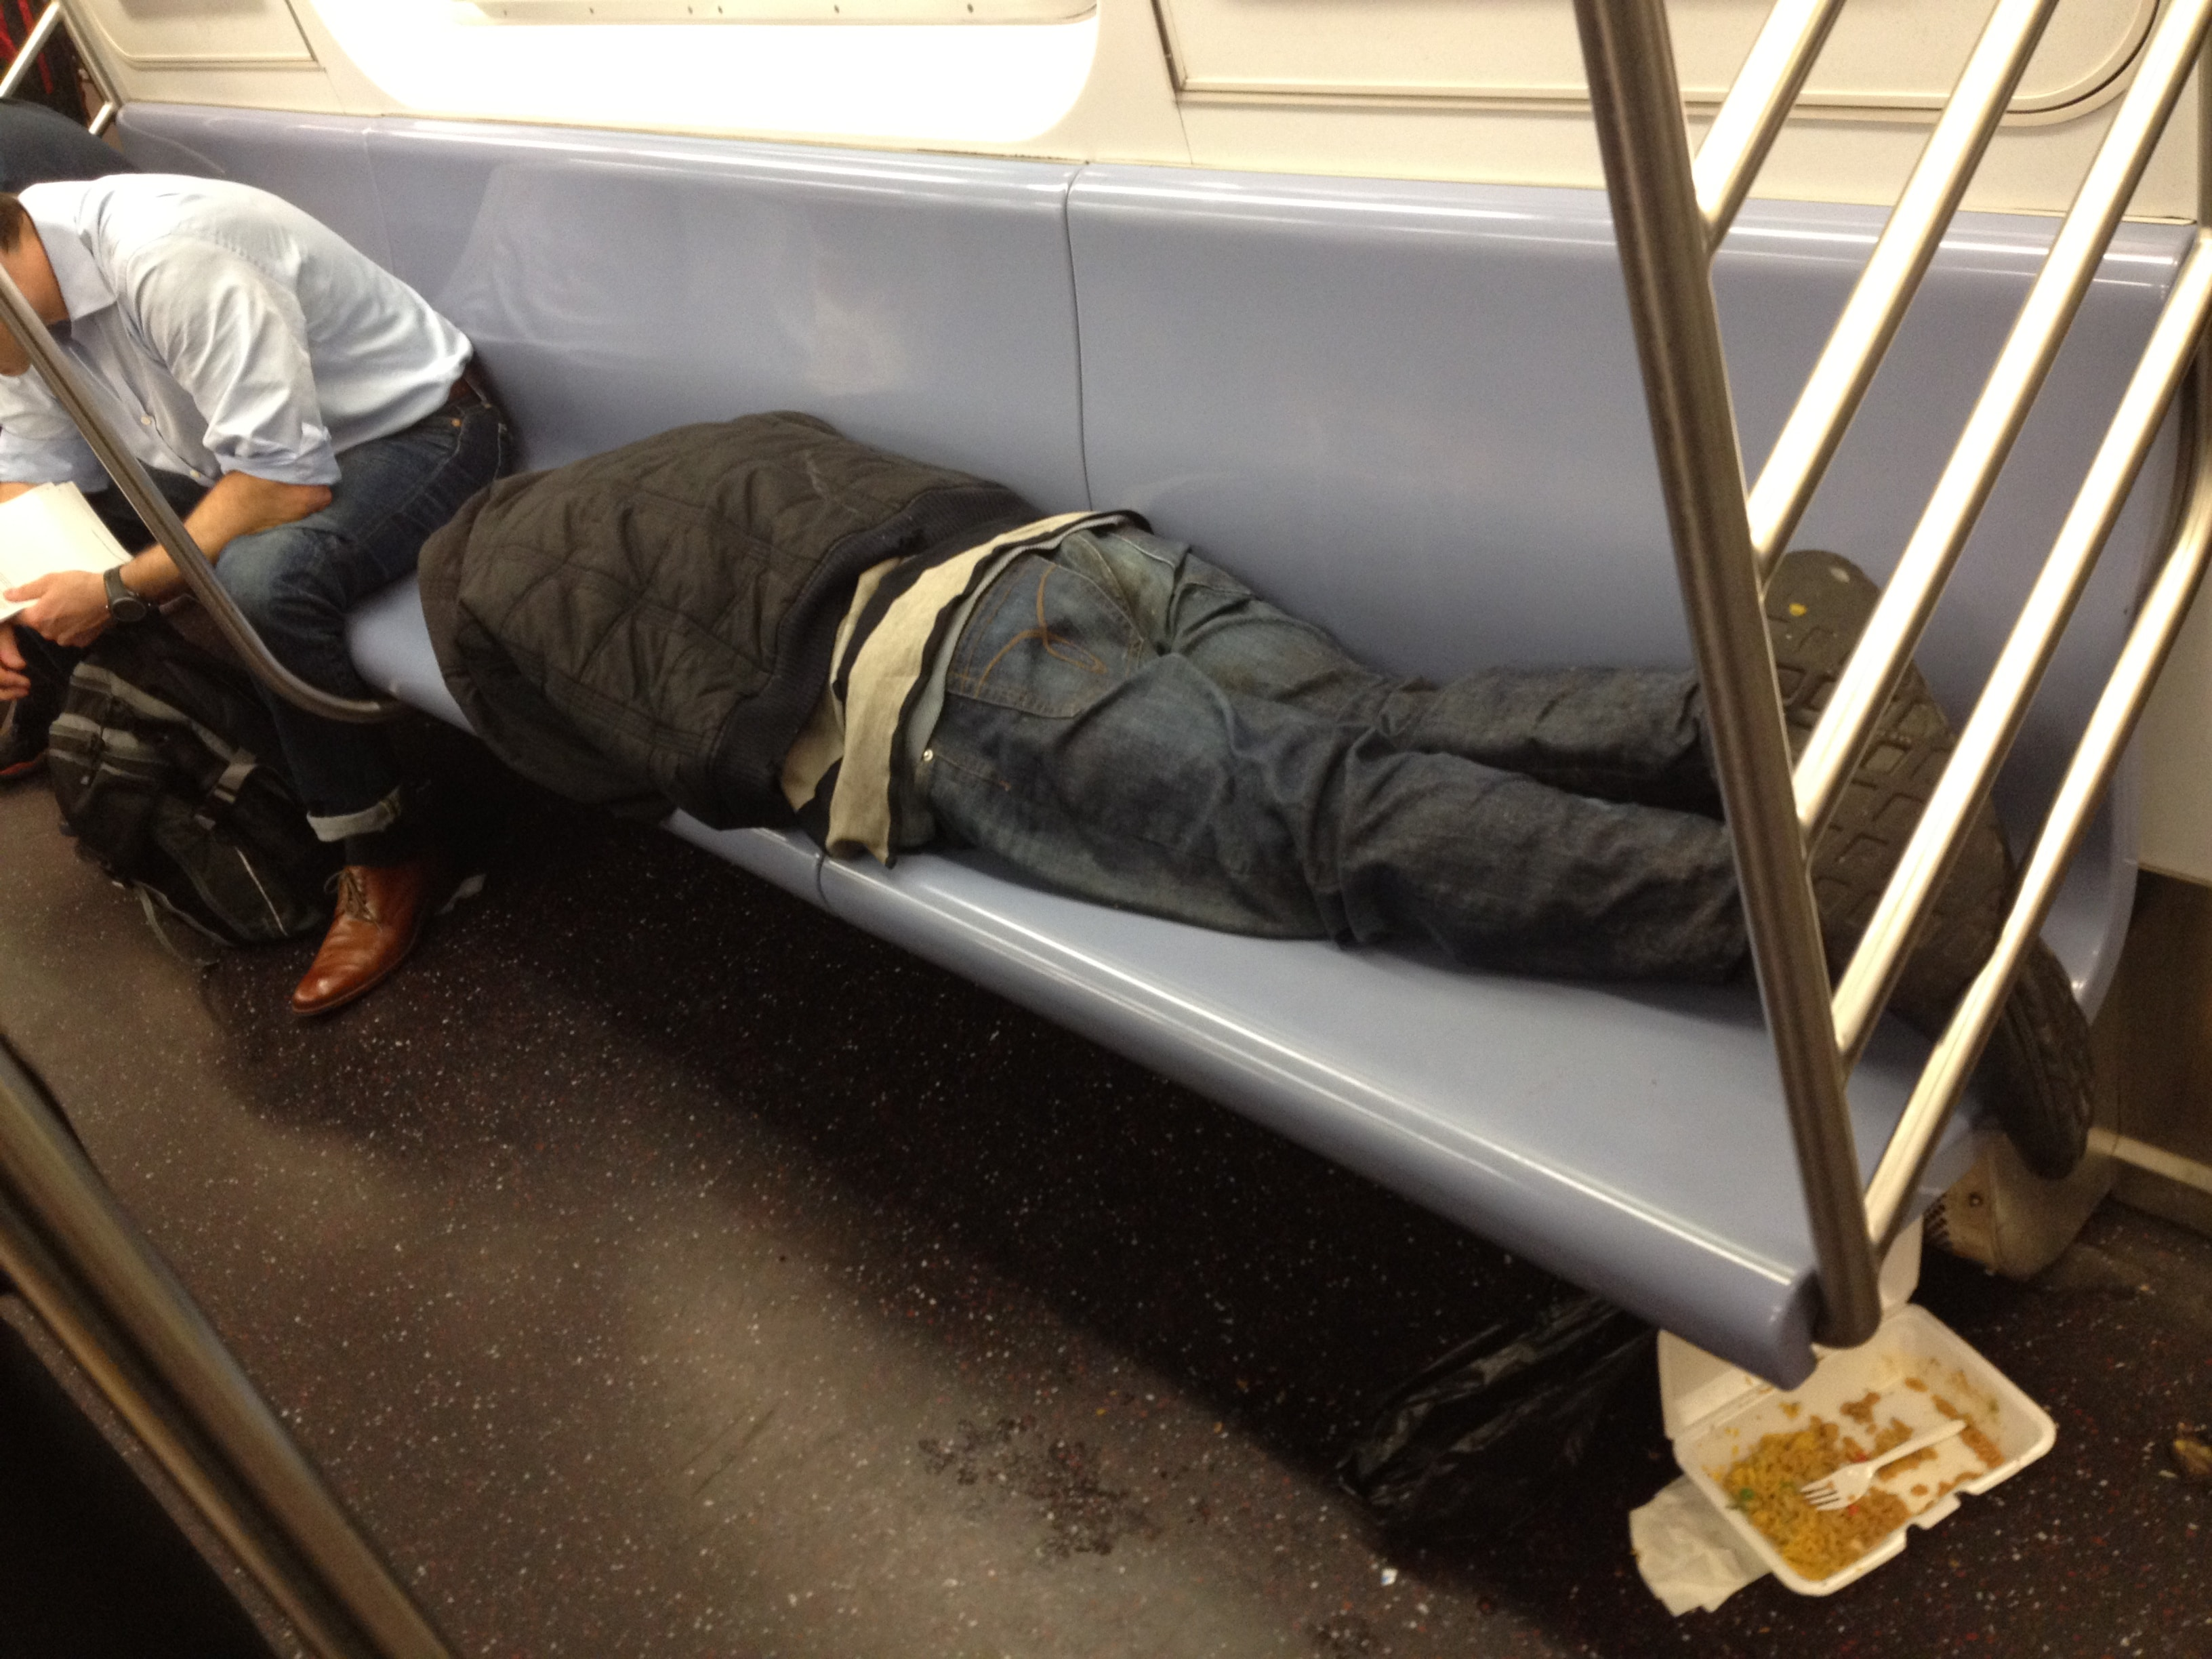 Homeless man on subway